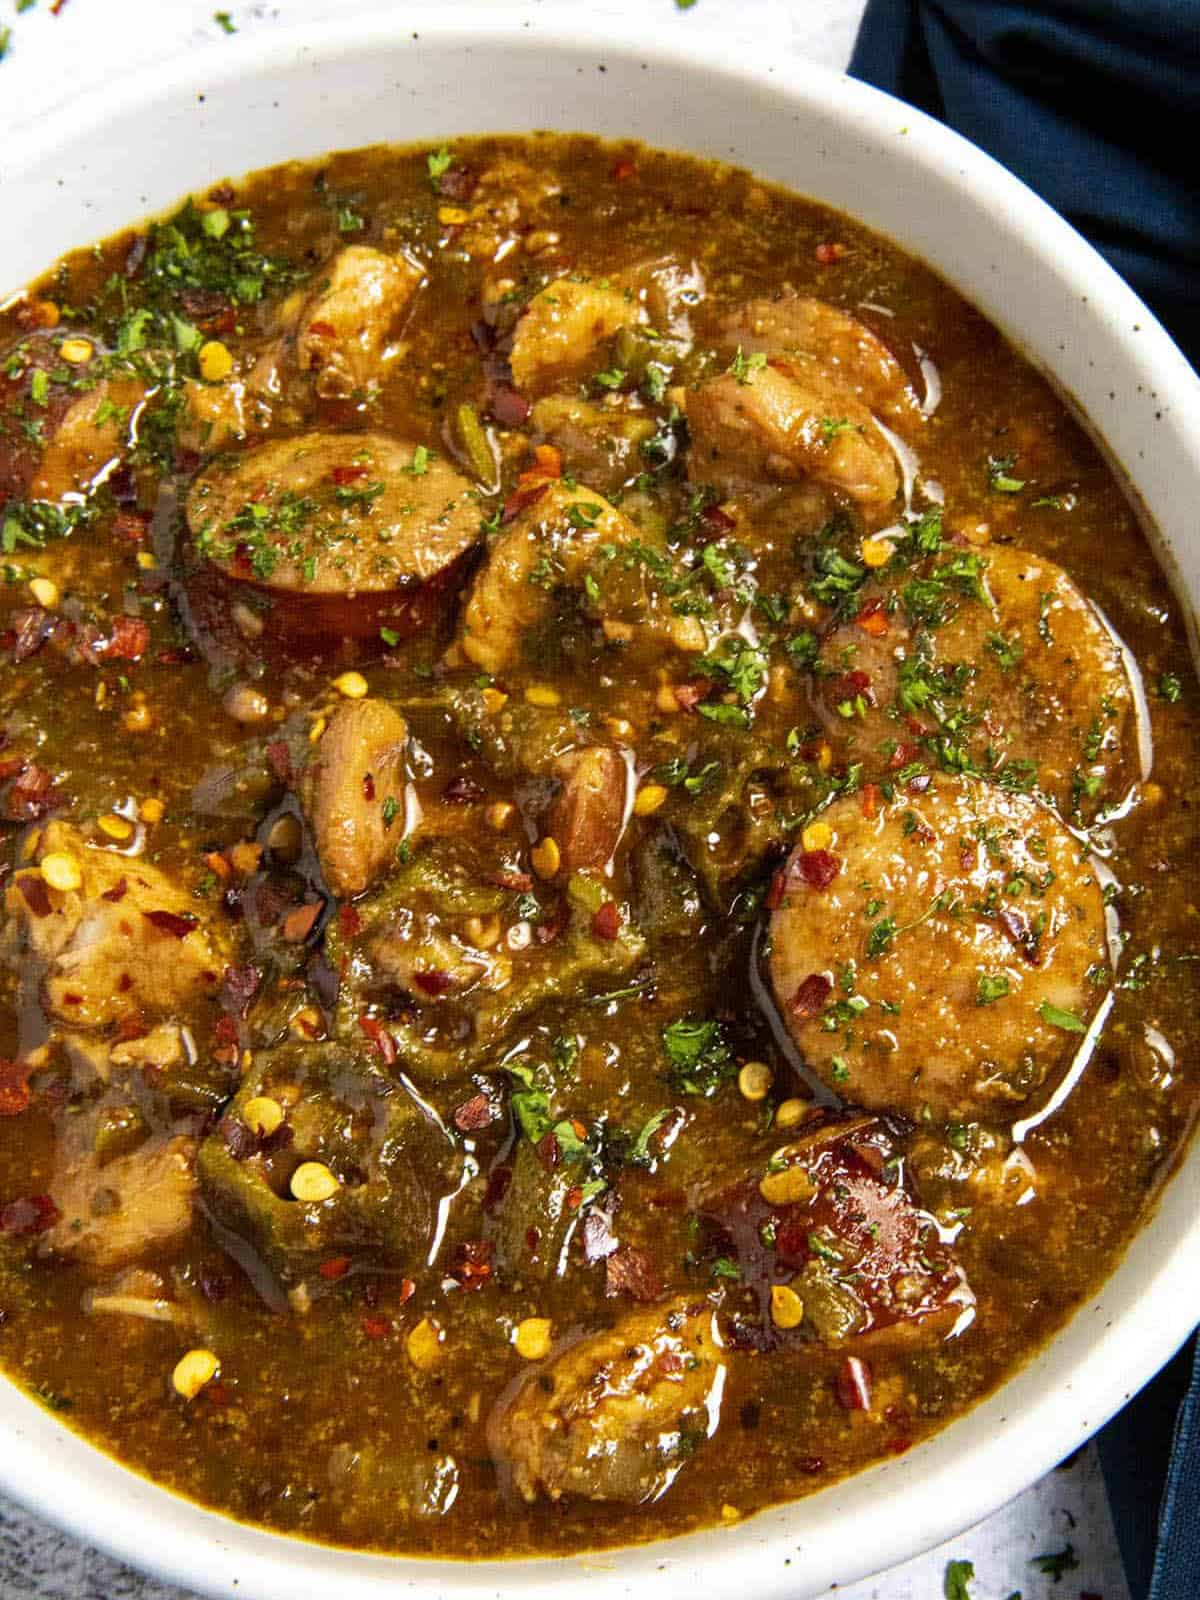 My Favorite Gumbo Recipe – Story